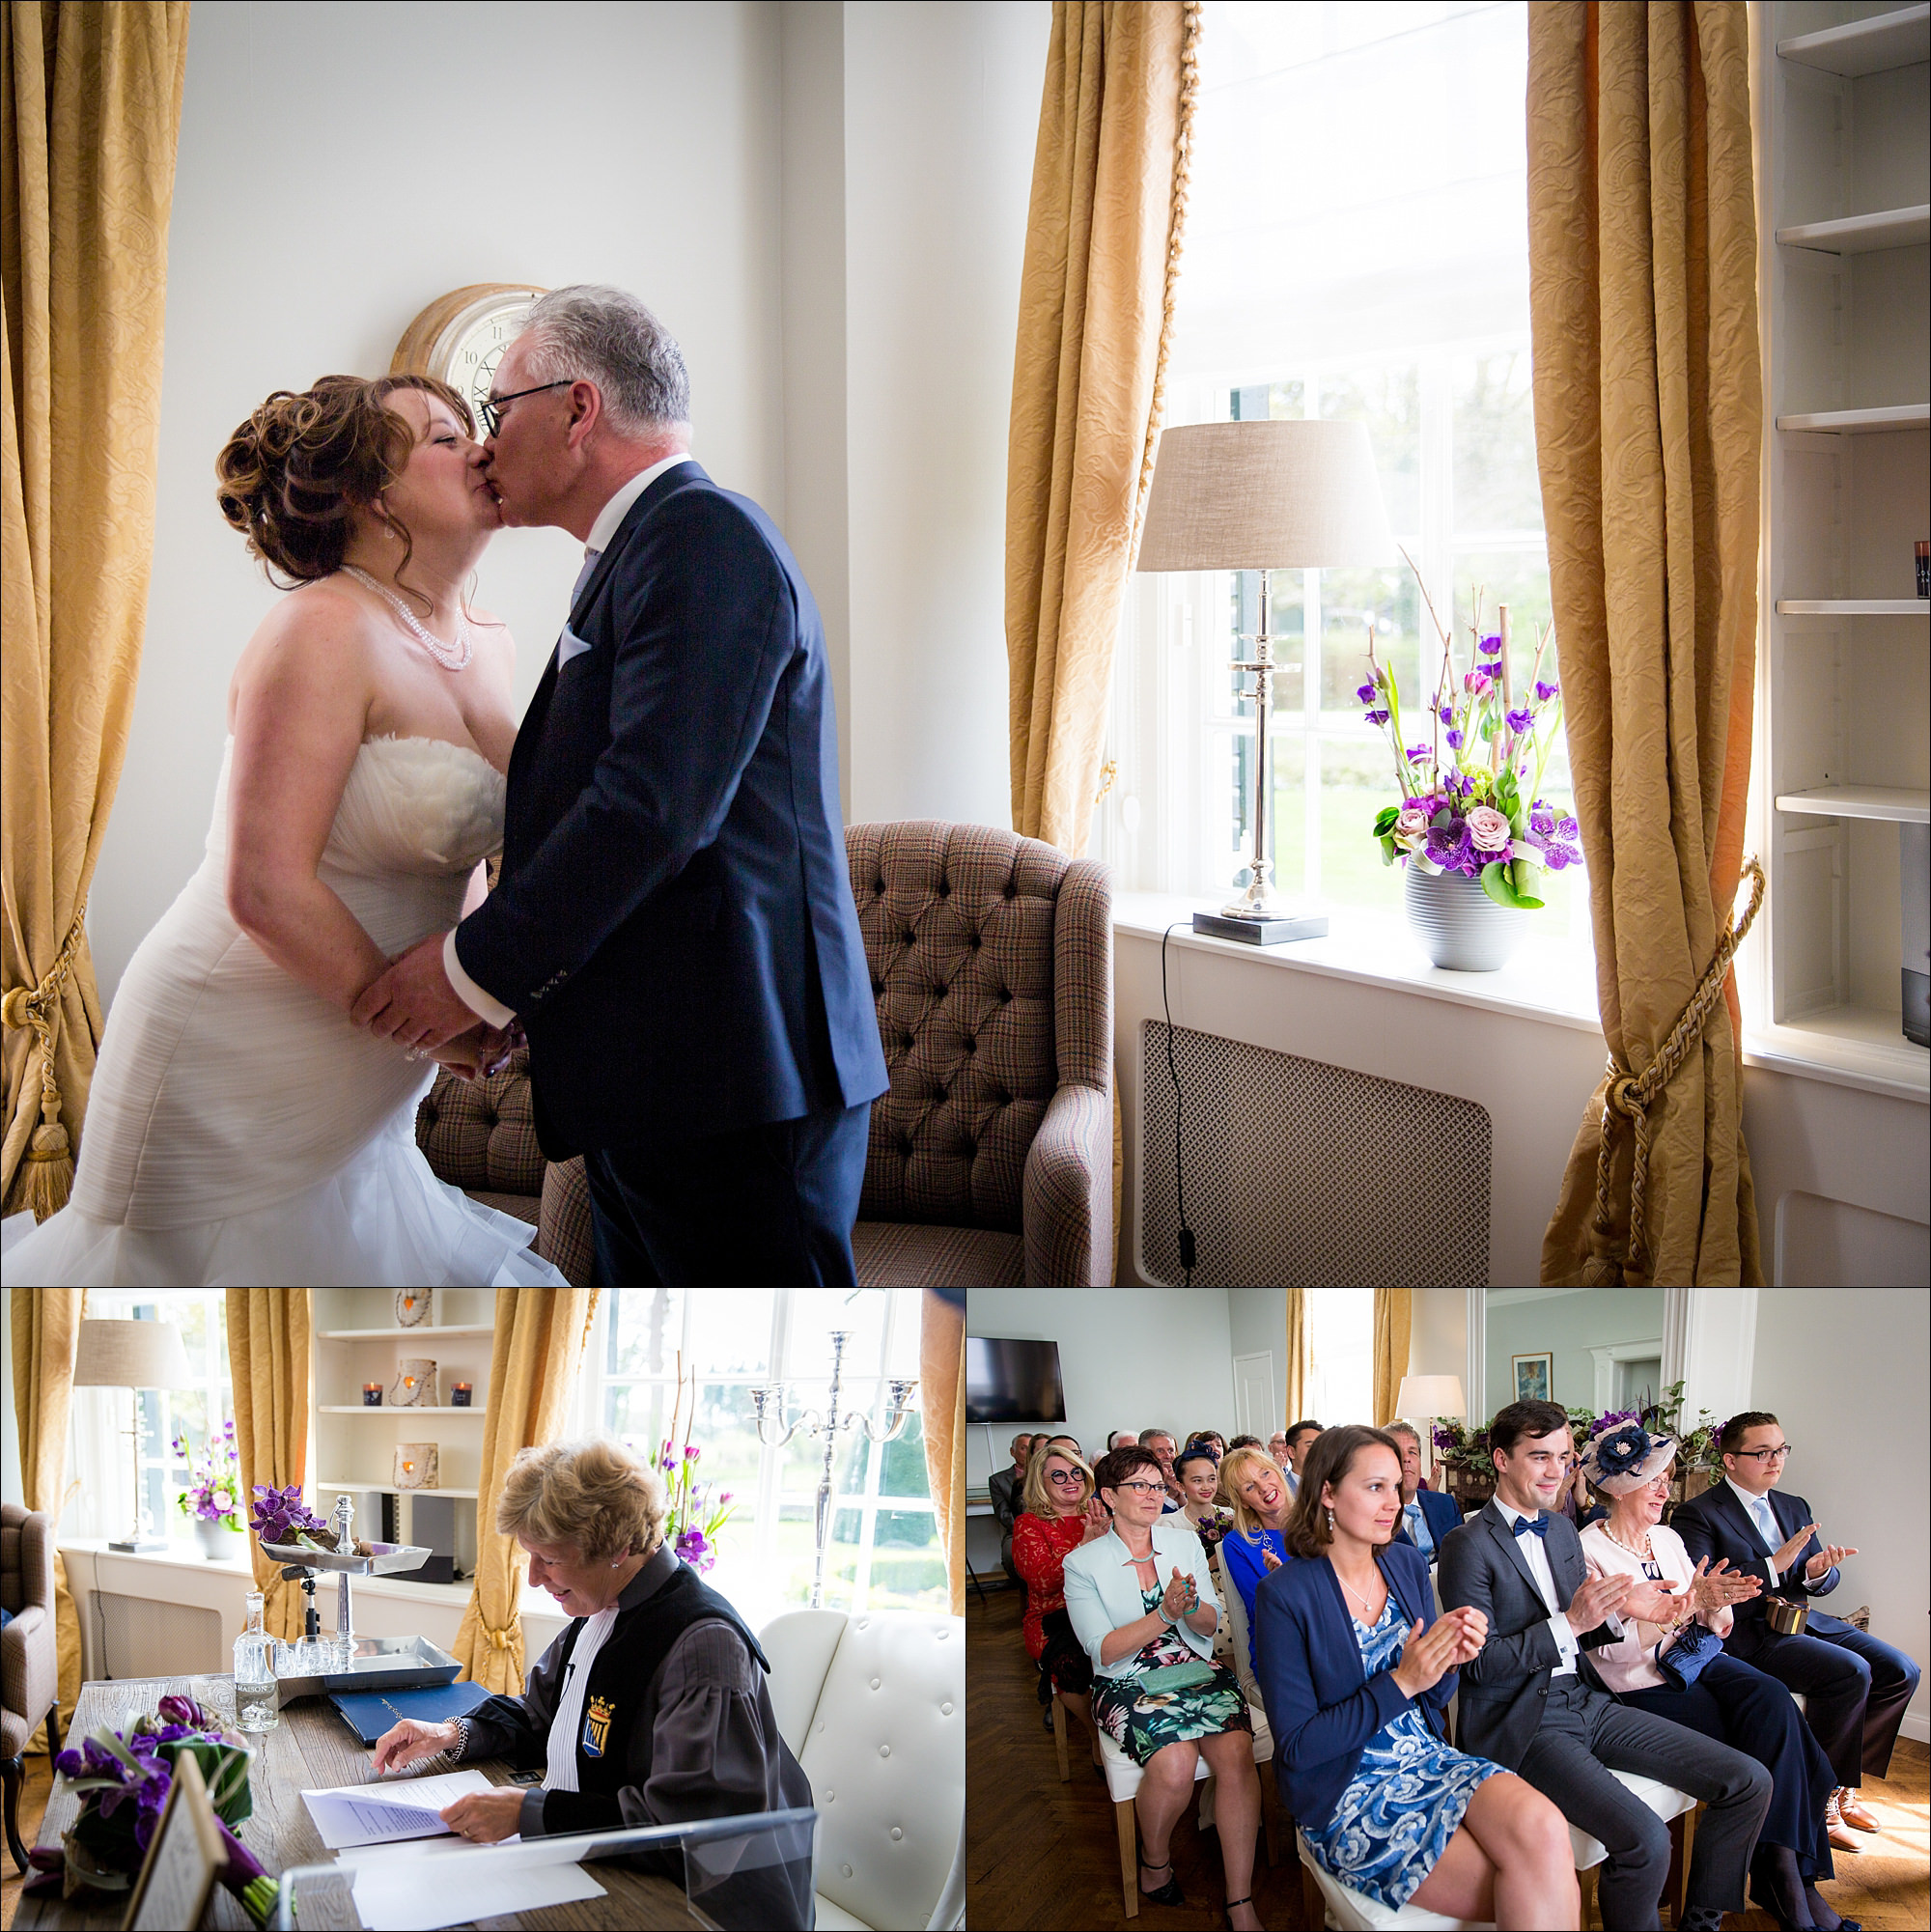 wedding photographer dublin david duignan photography real weddings Ireland 52